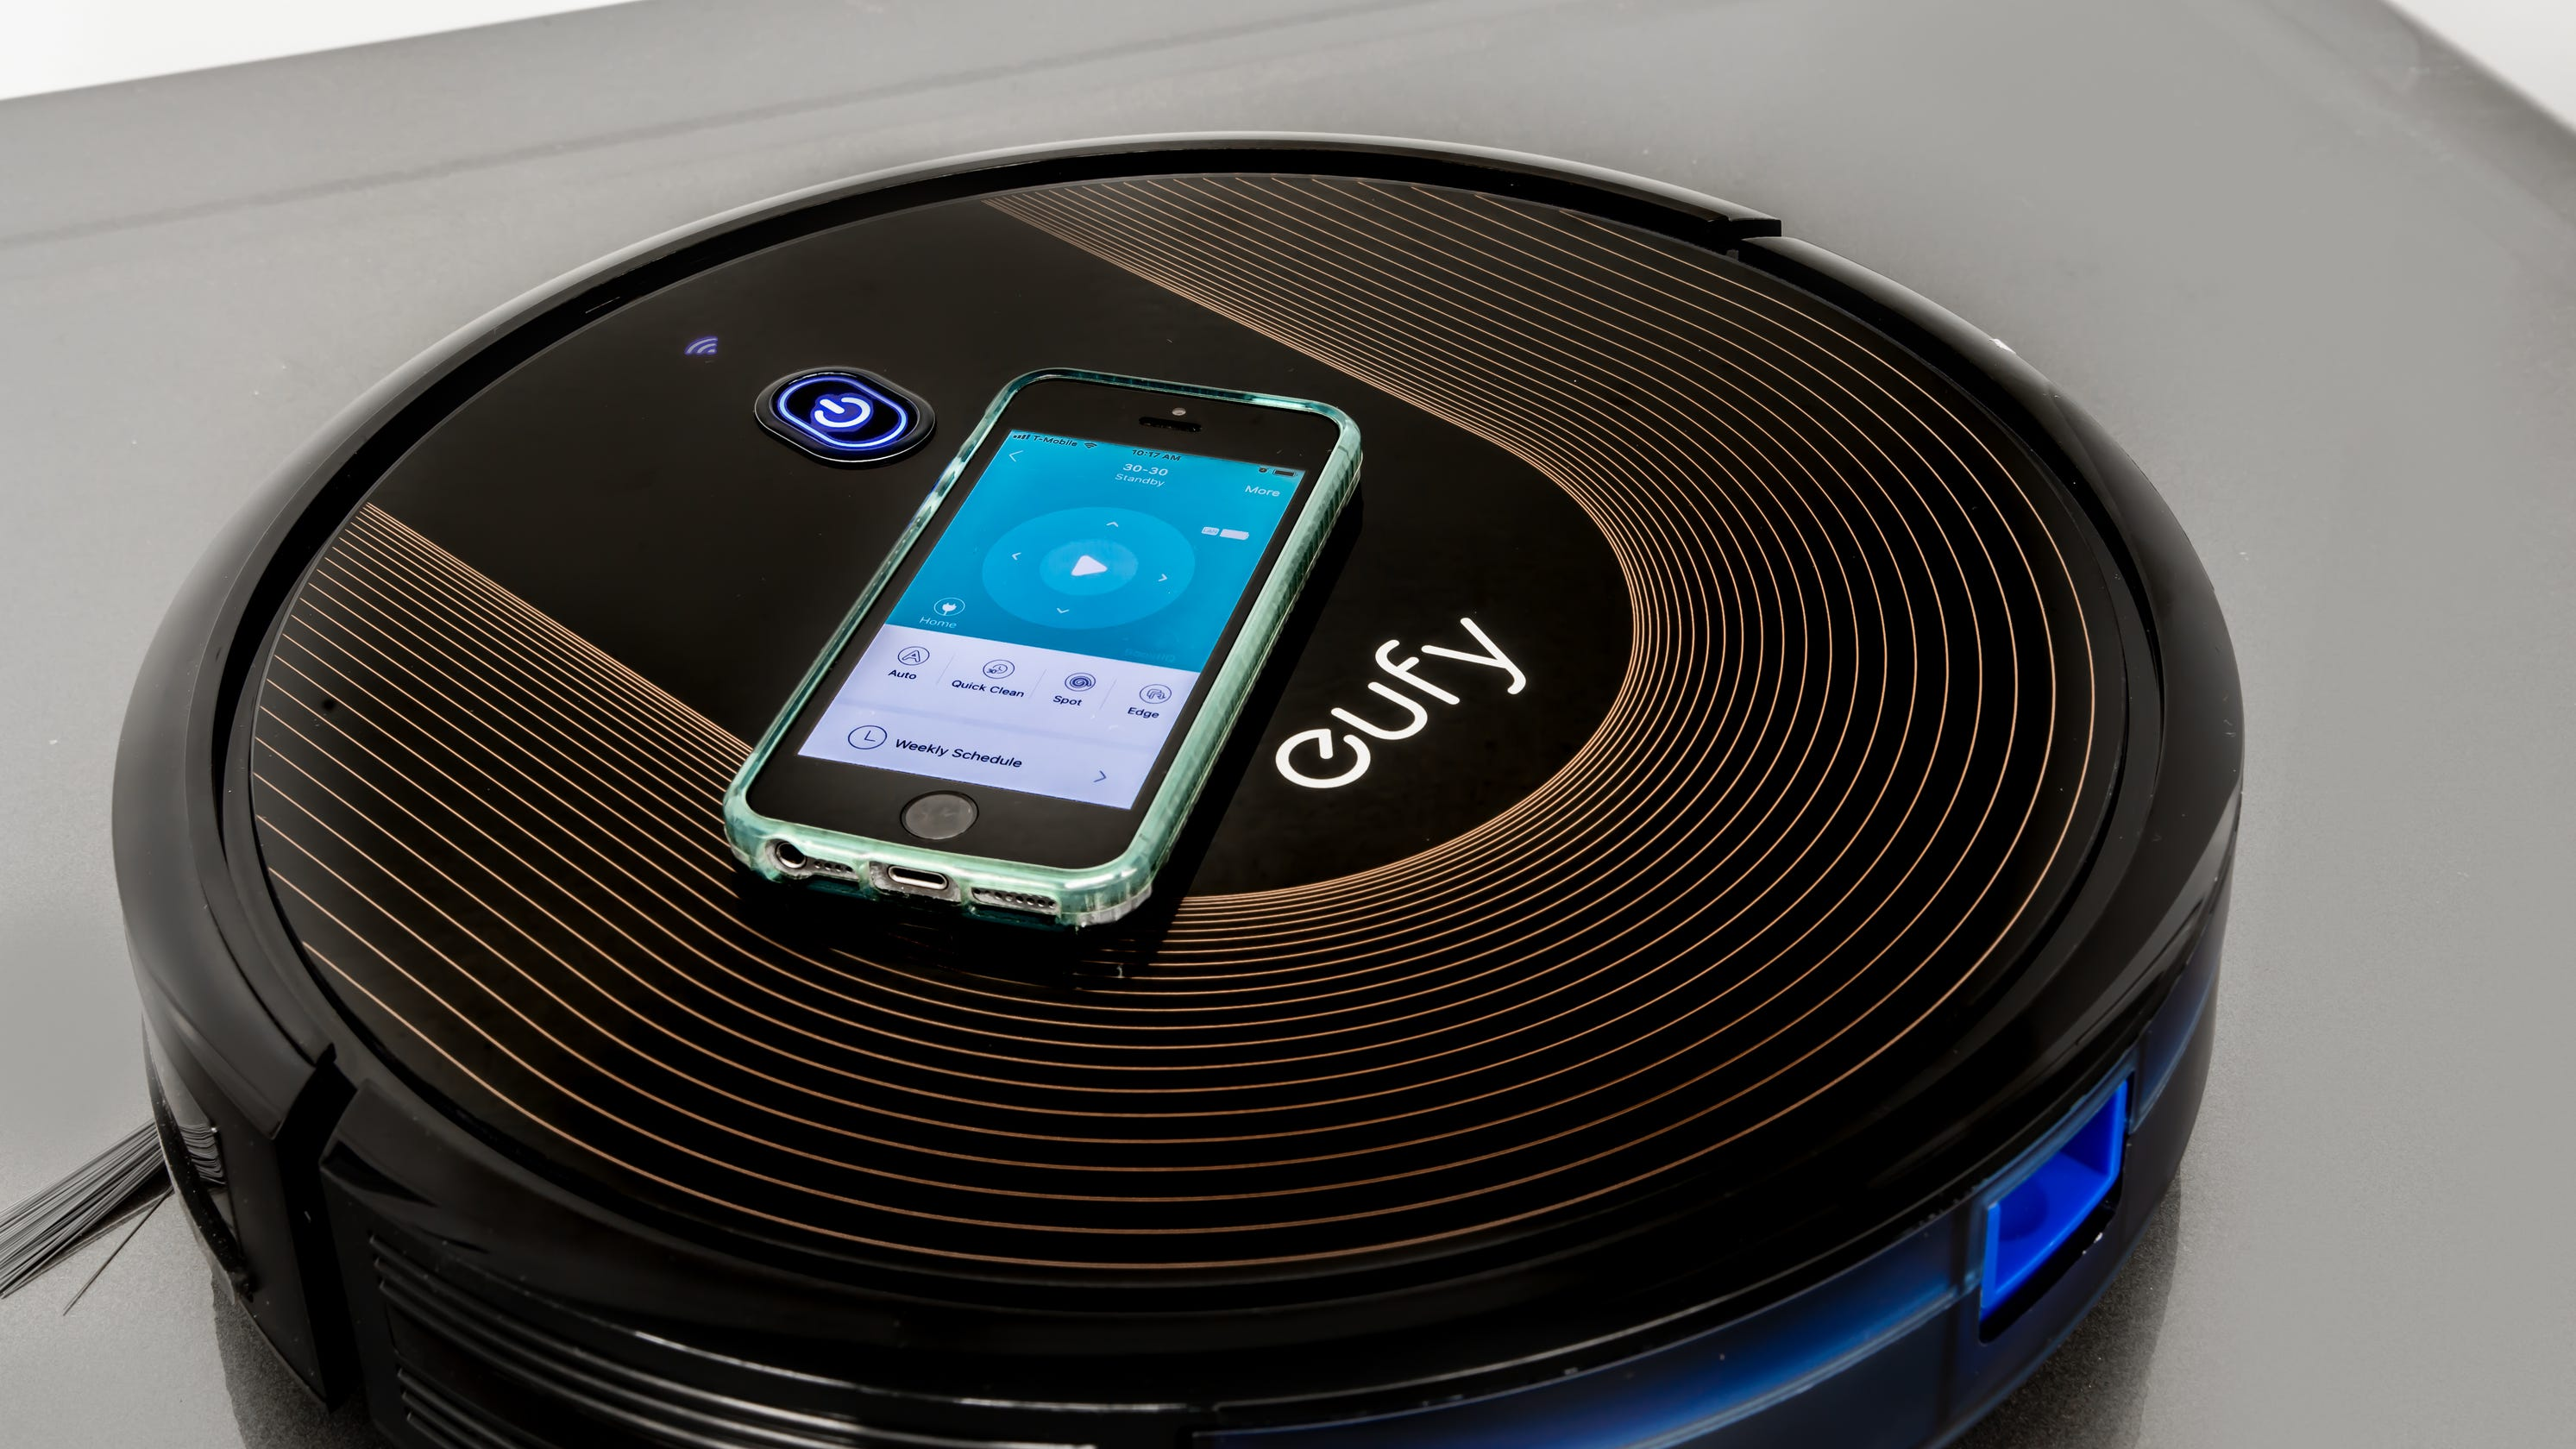 Cyber Monday 2020: Our favorite smart robot vacuum is on major discount